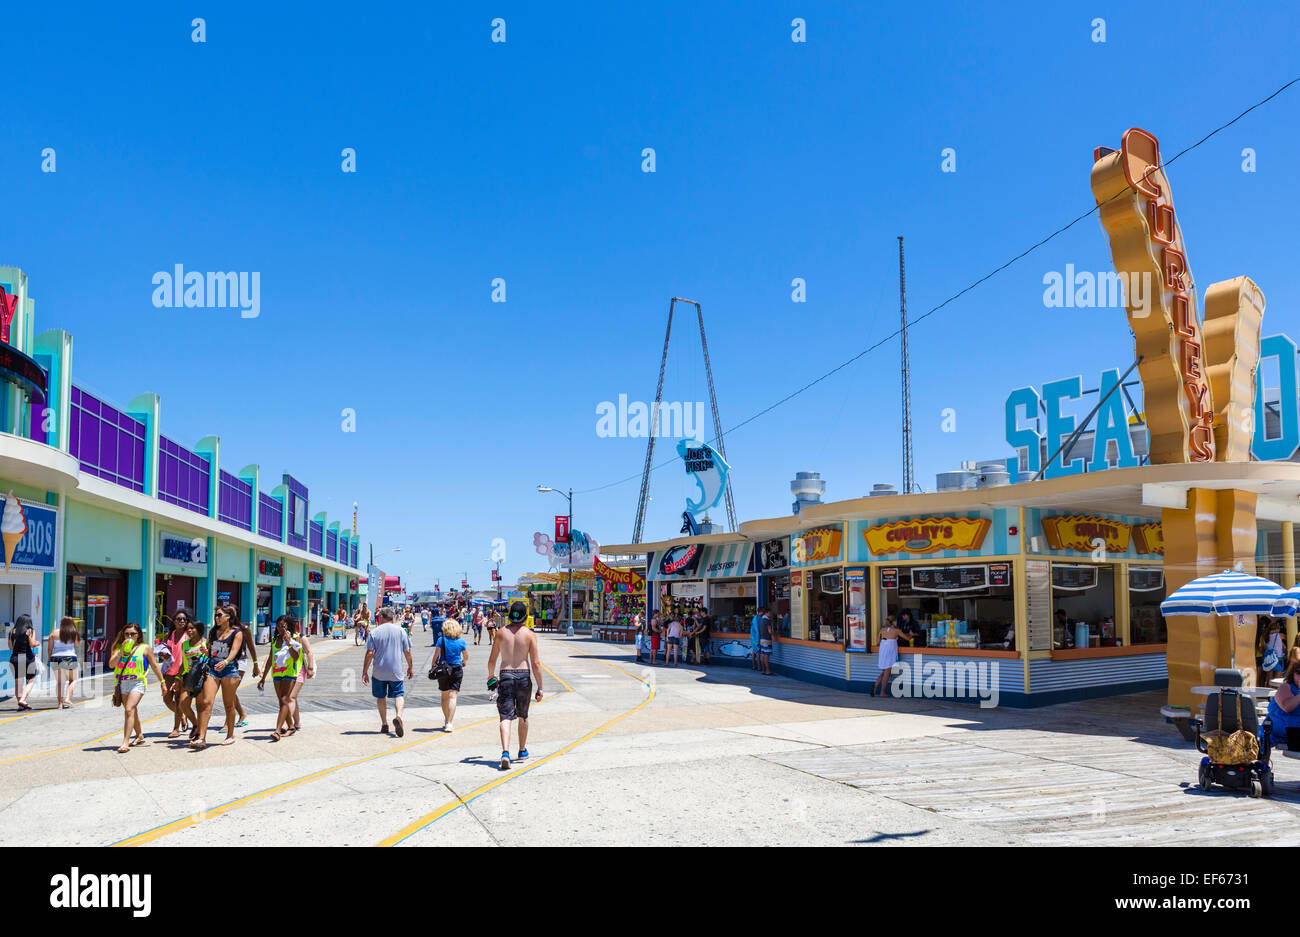 The boardwalk in North Wildwood, Cape May County, New Jersey, USA - Stock Image